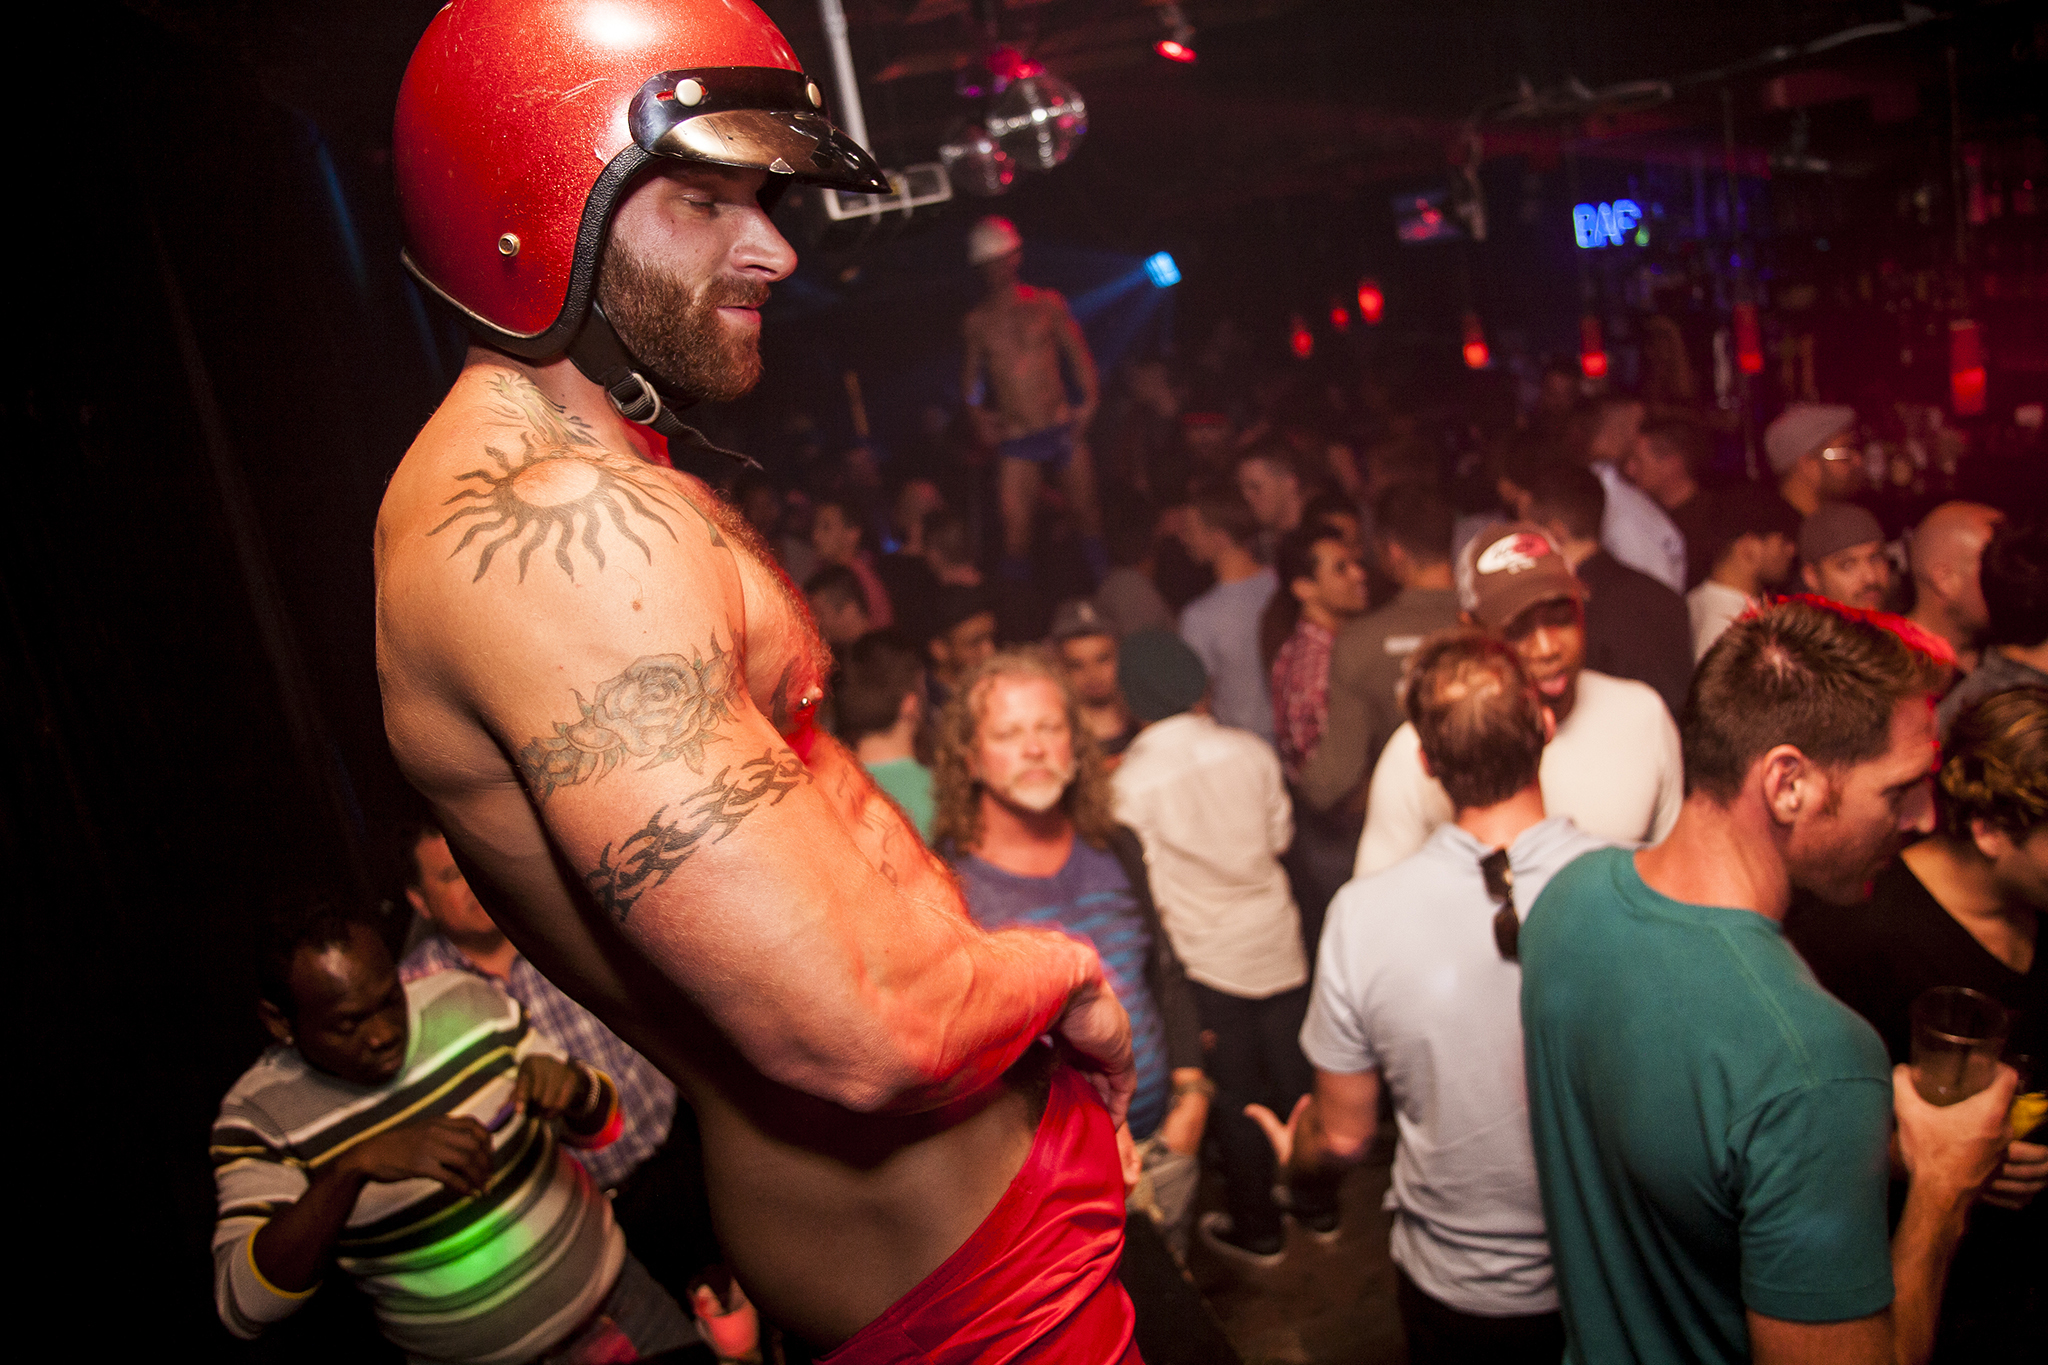 15 Superb Gay Bars In Los Angeles To Grab A Dink At Ranked